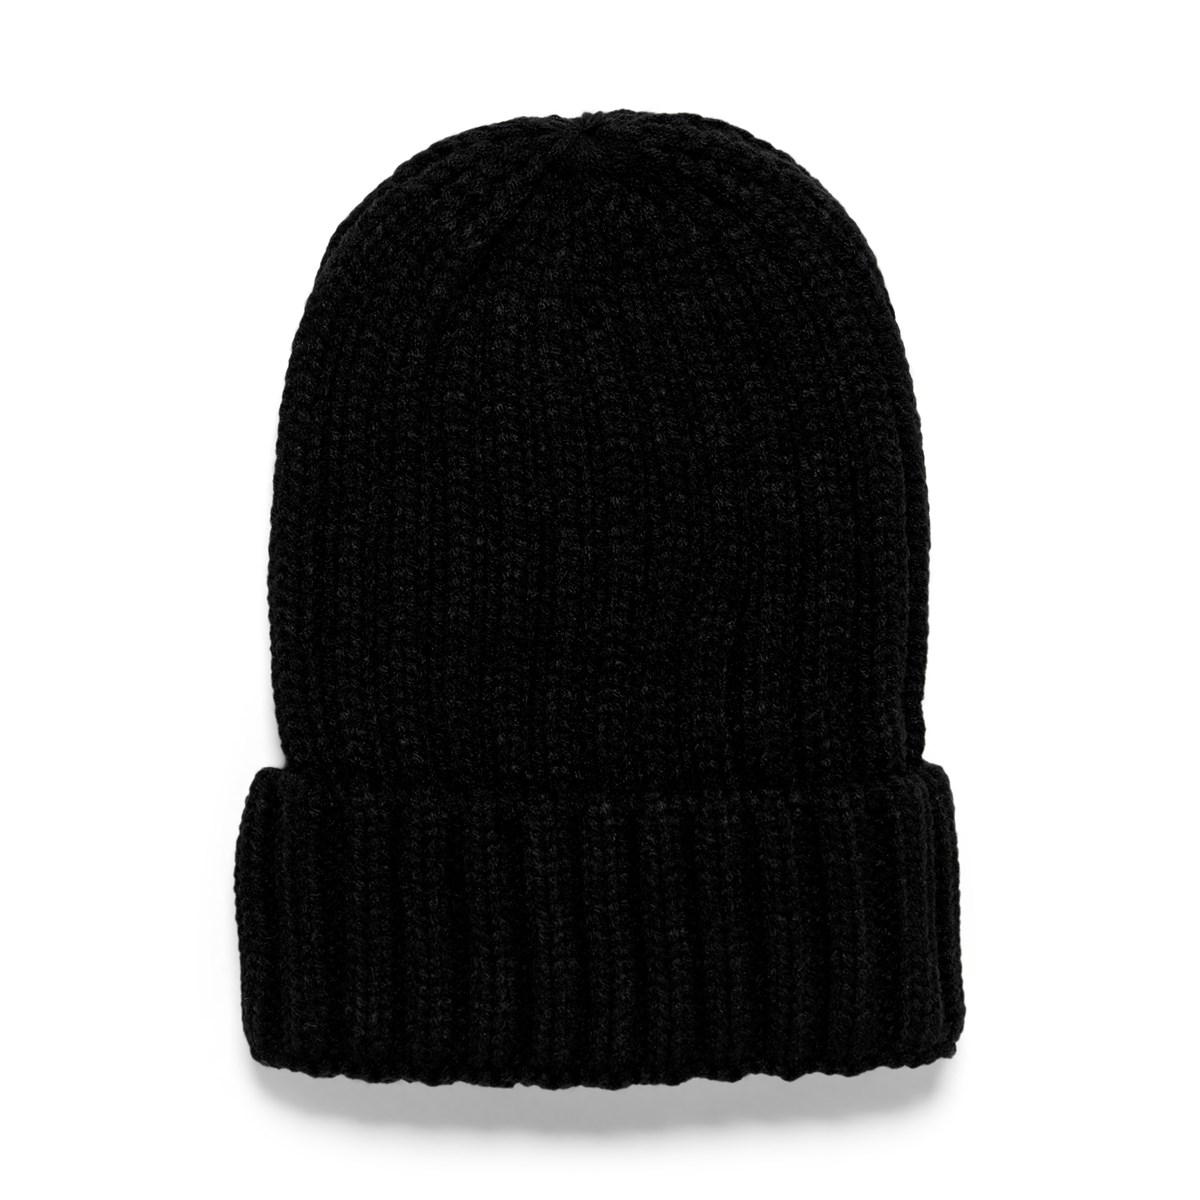 Women's Rib Knit Beanie in Black